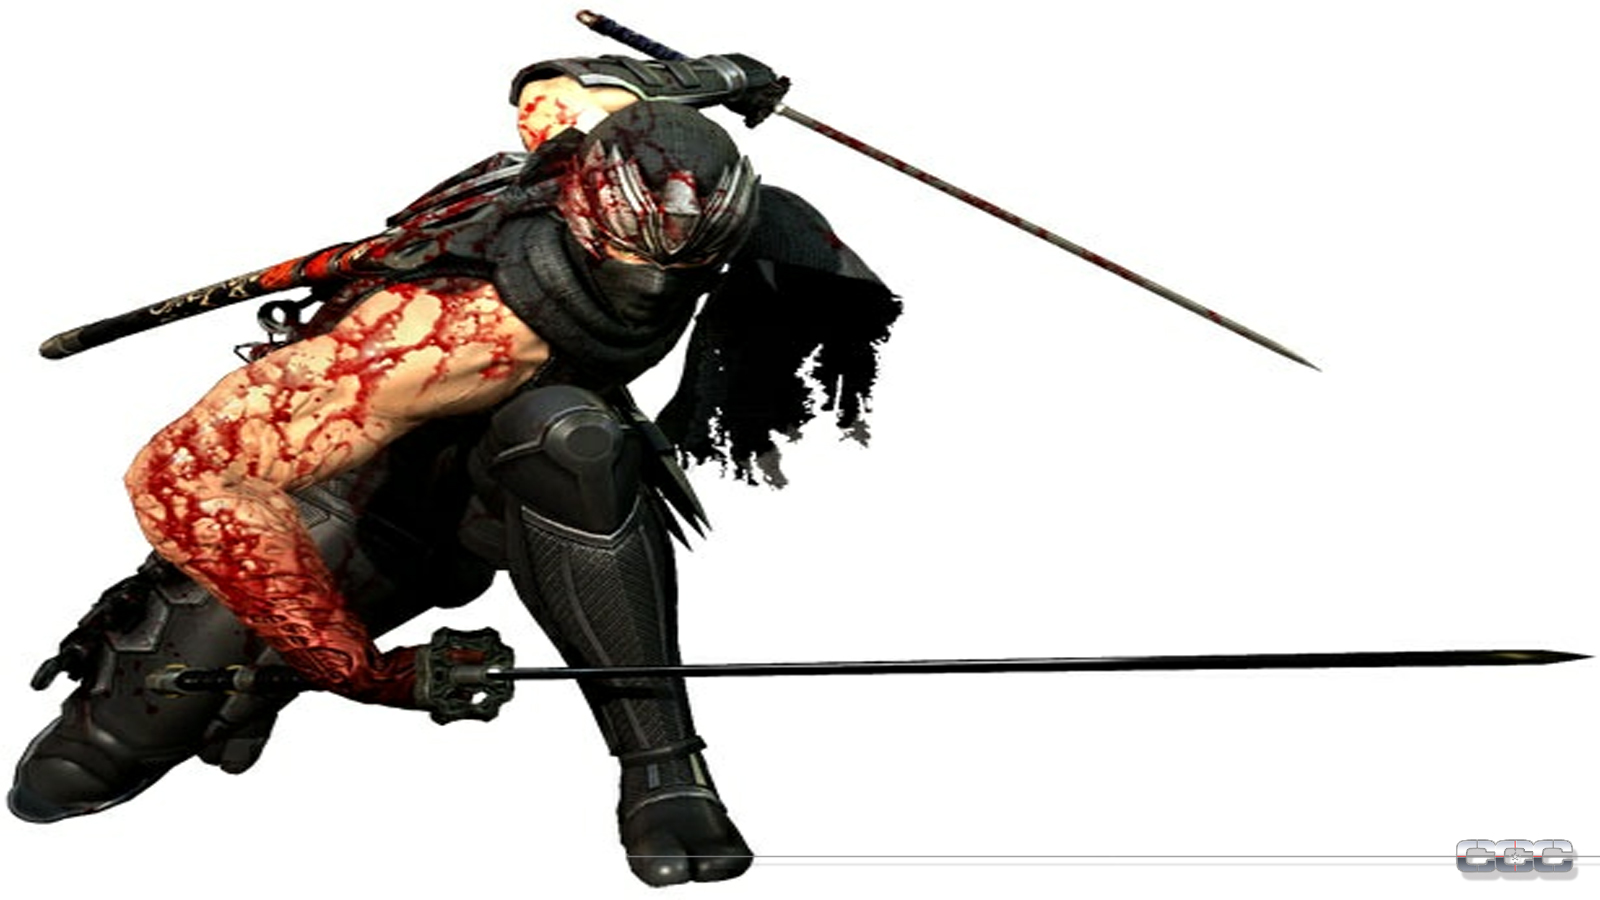 Ninja Gaiden 3 Razor S Edge Wallpapers Video Game Hq Ninja Gaiden 3 Razor S Edge Pictures 4k Wallpapers 2019